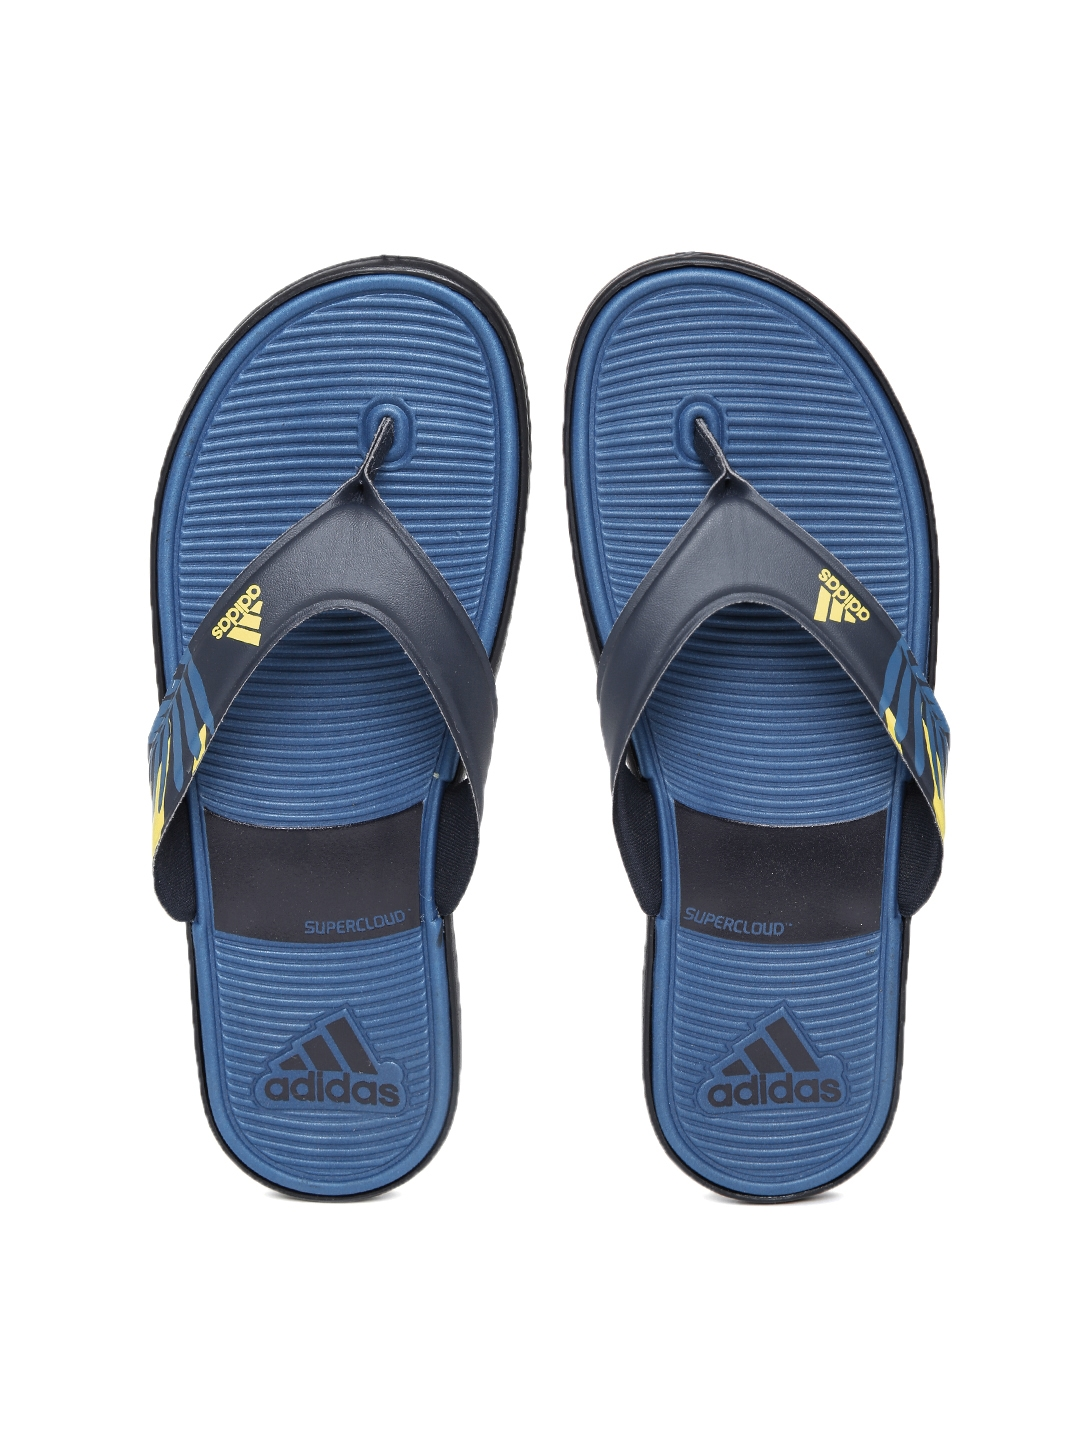 72491cf531c9 Buy ADIDAS Men Blue Super Cloud Beach II Flip Flops - Flip Flops for ...